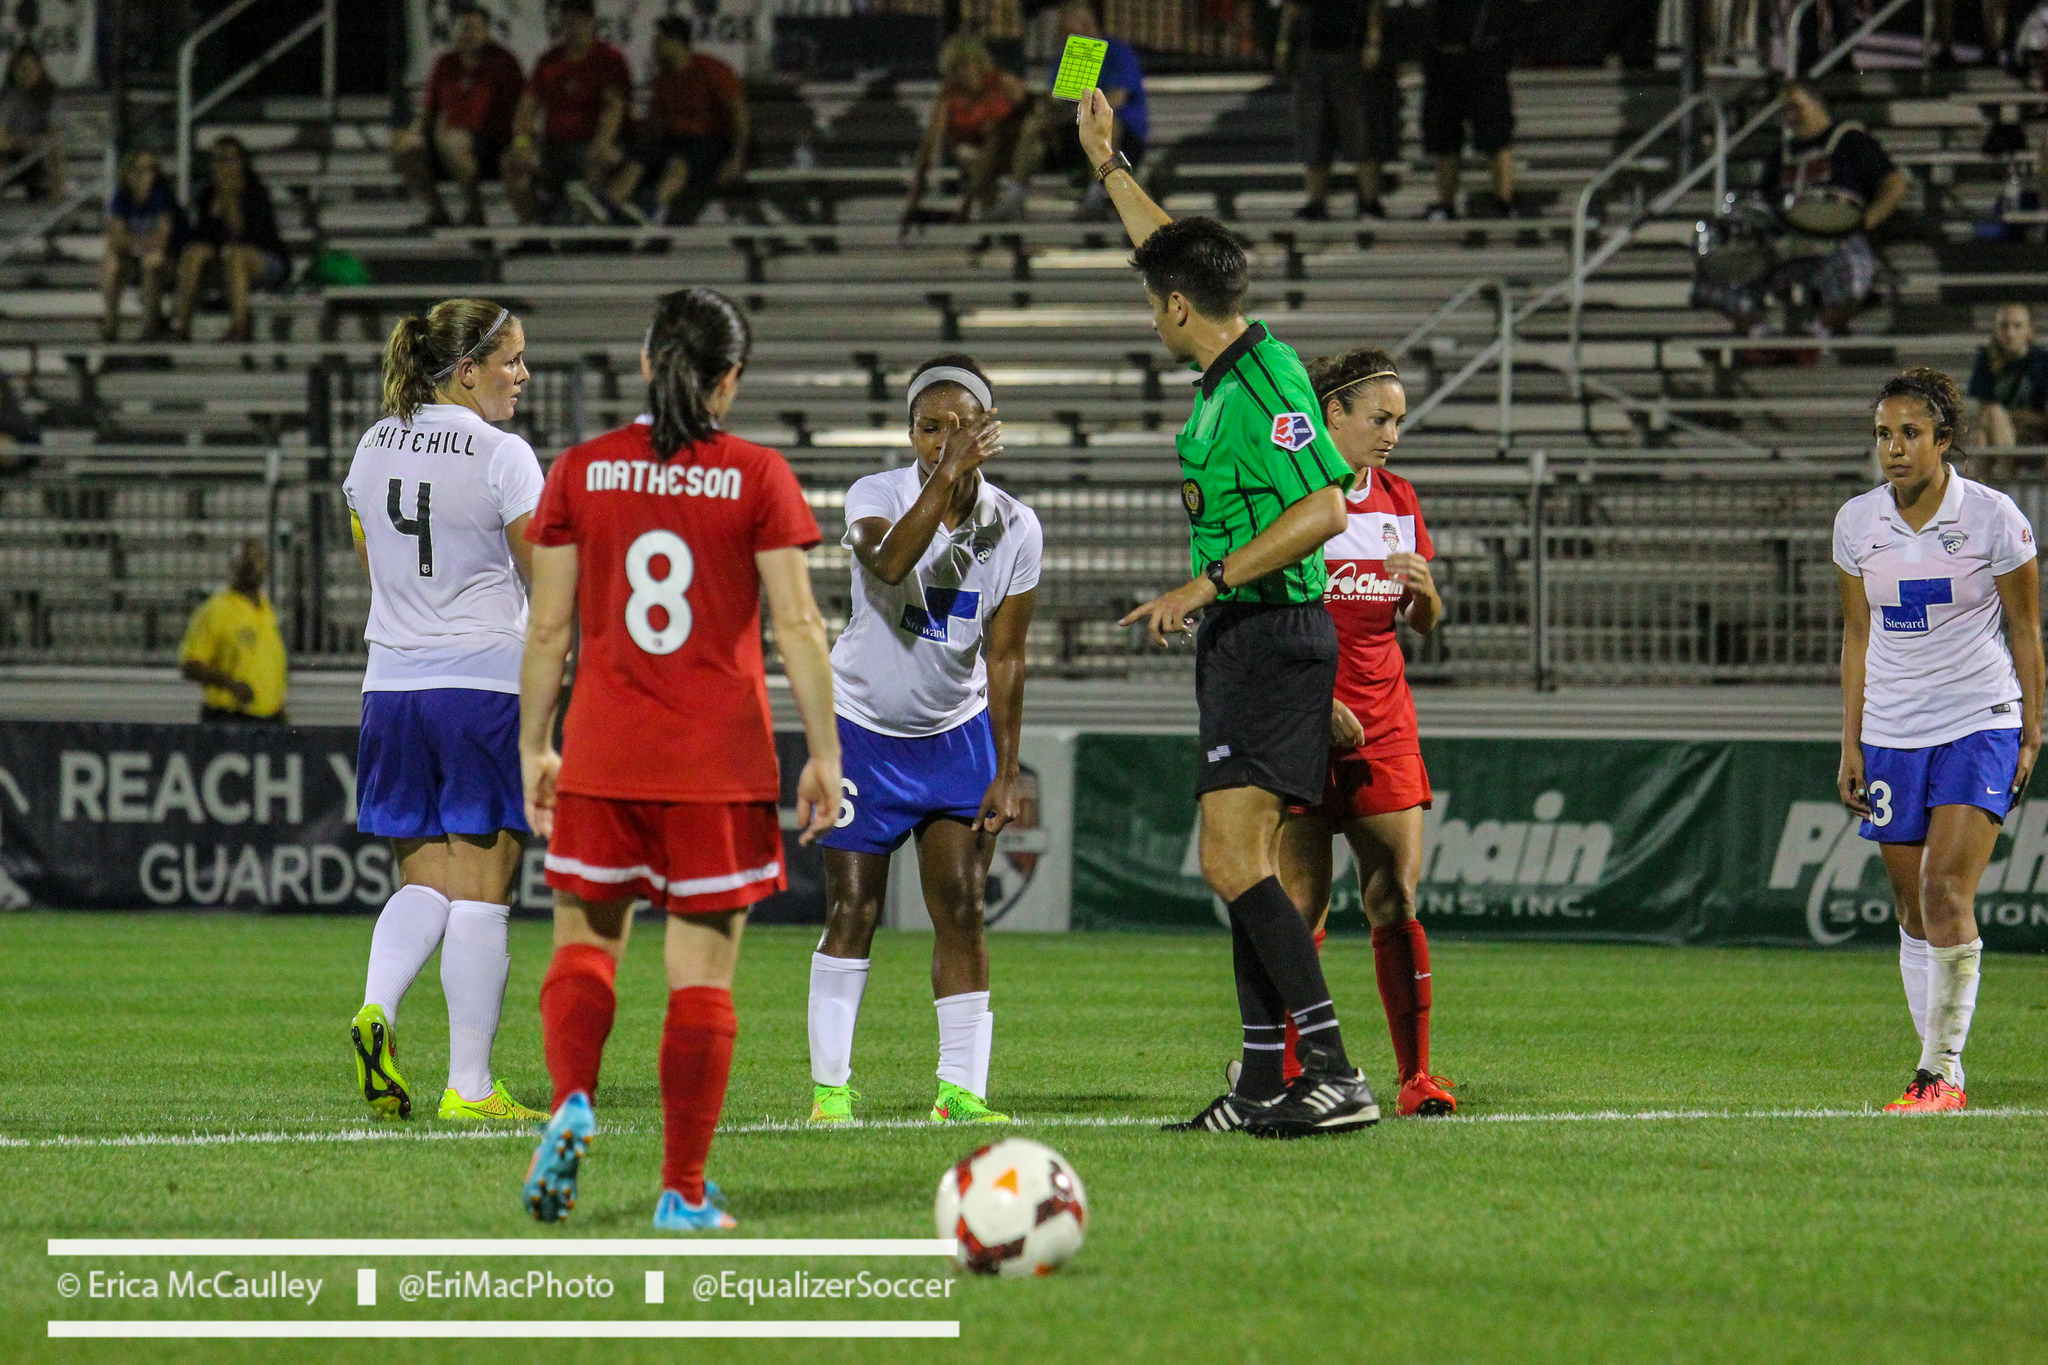 Three penalty kicks were issued in Wednesday's match between the Spirit and Breakers. (Photo Copyright Erica McCaulley for The Equalizer)